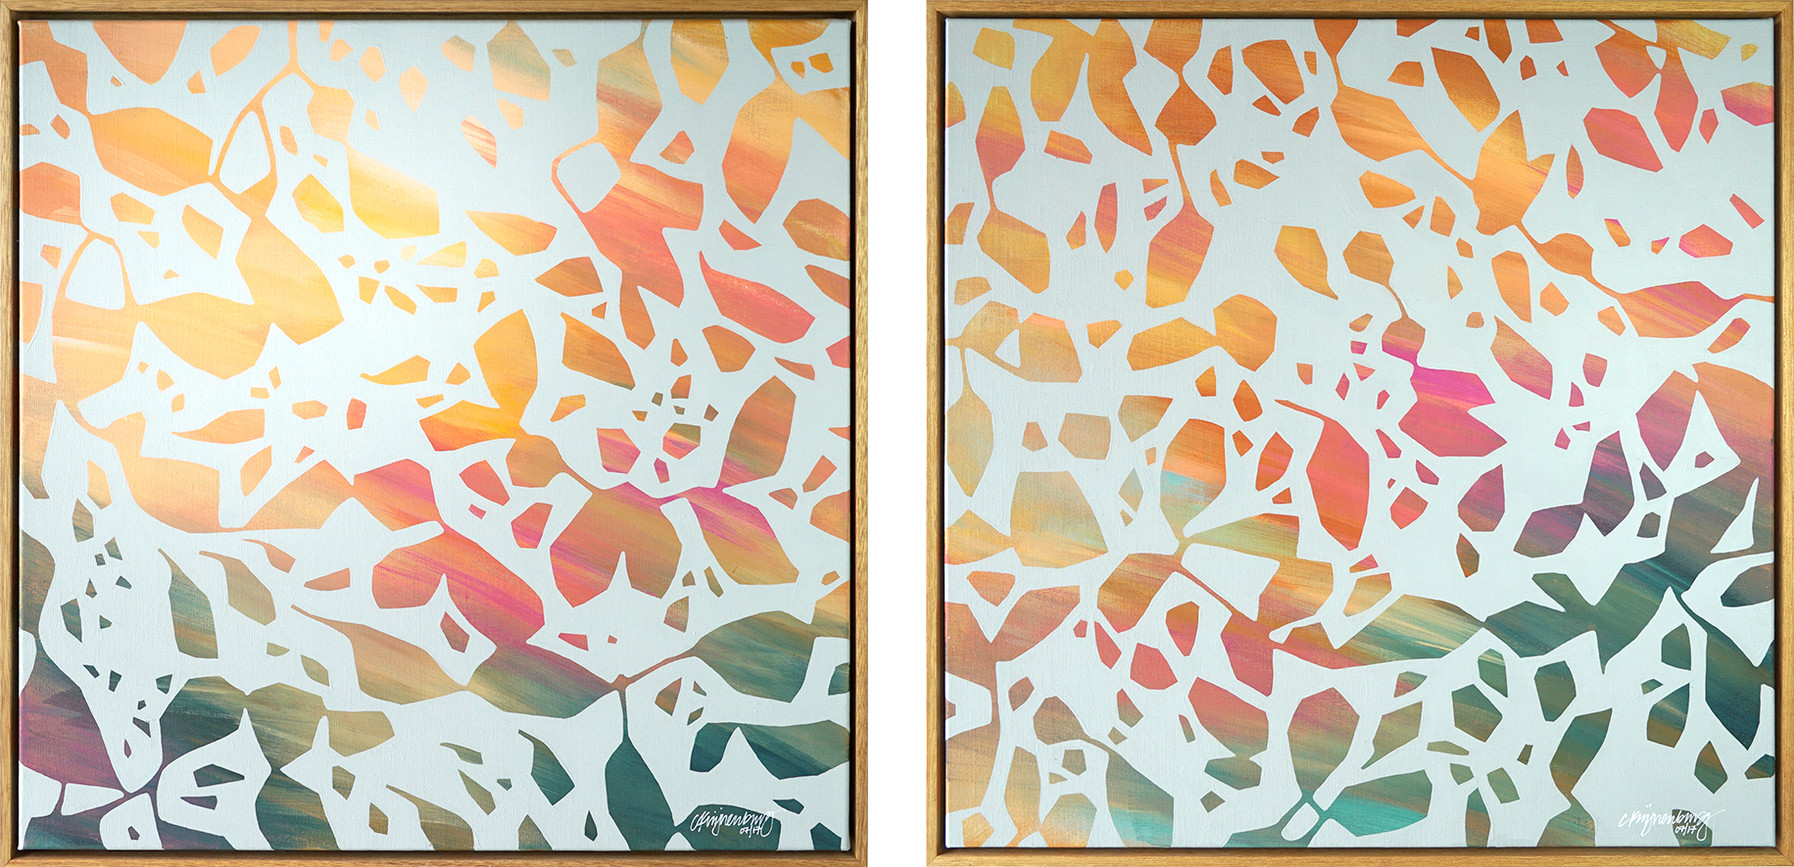 EVENTIDE I & II - DIPTYCH